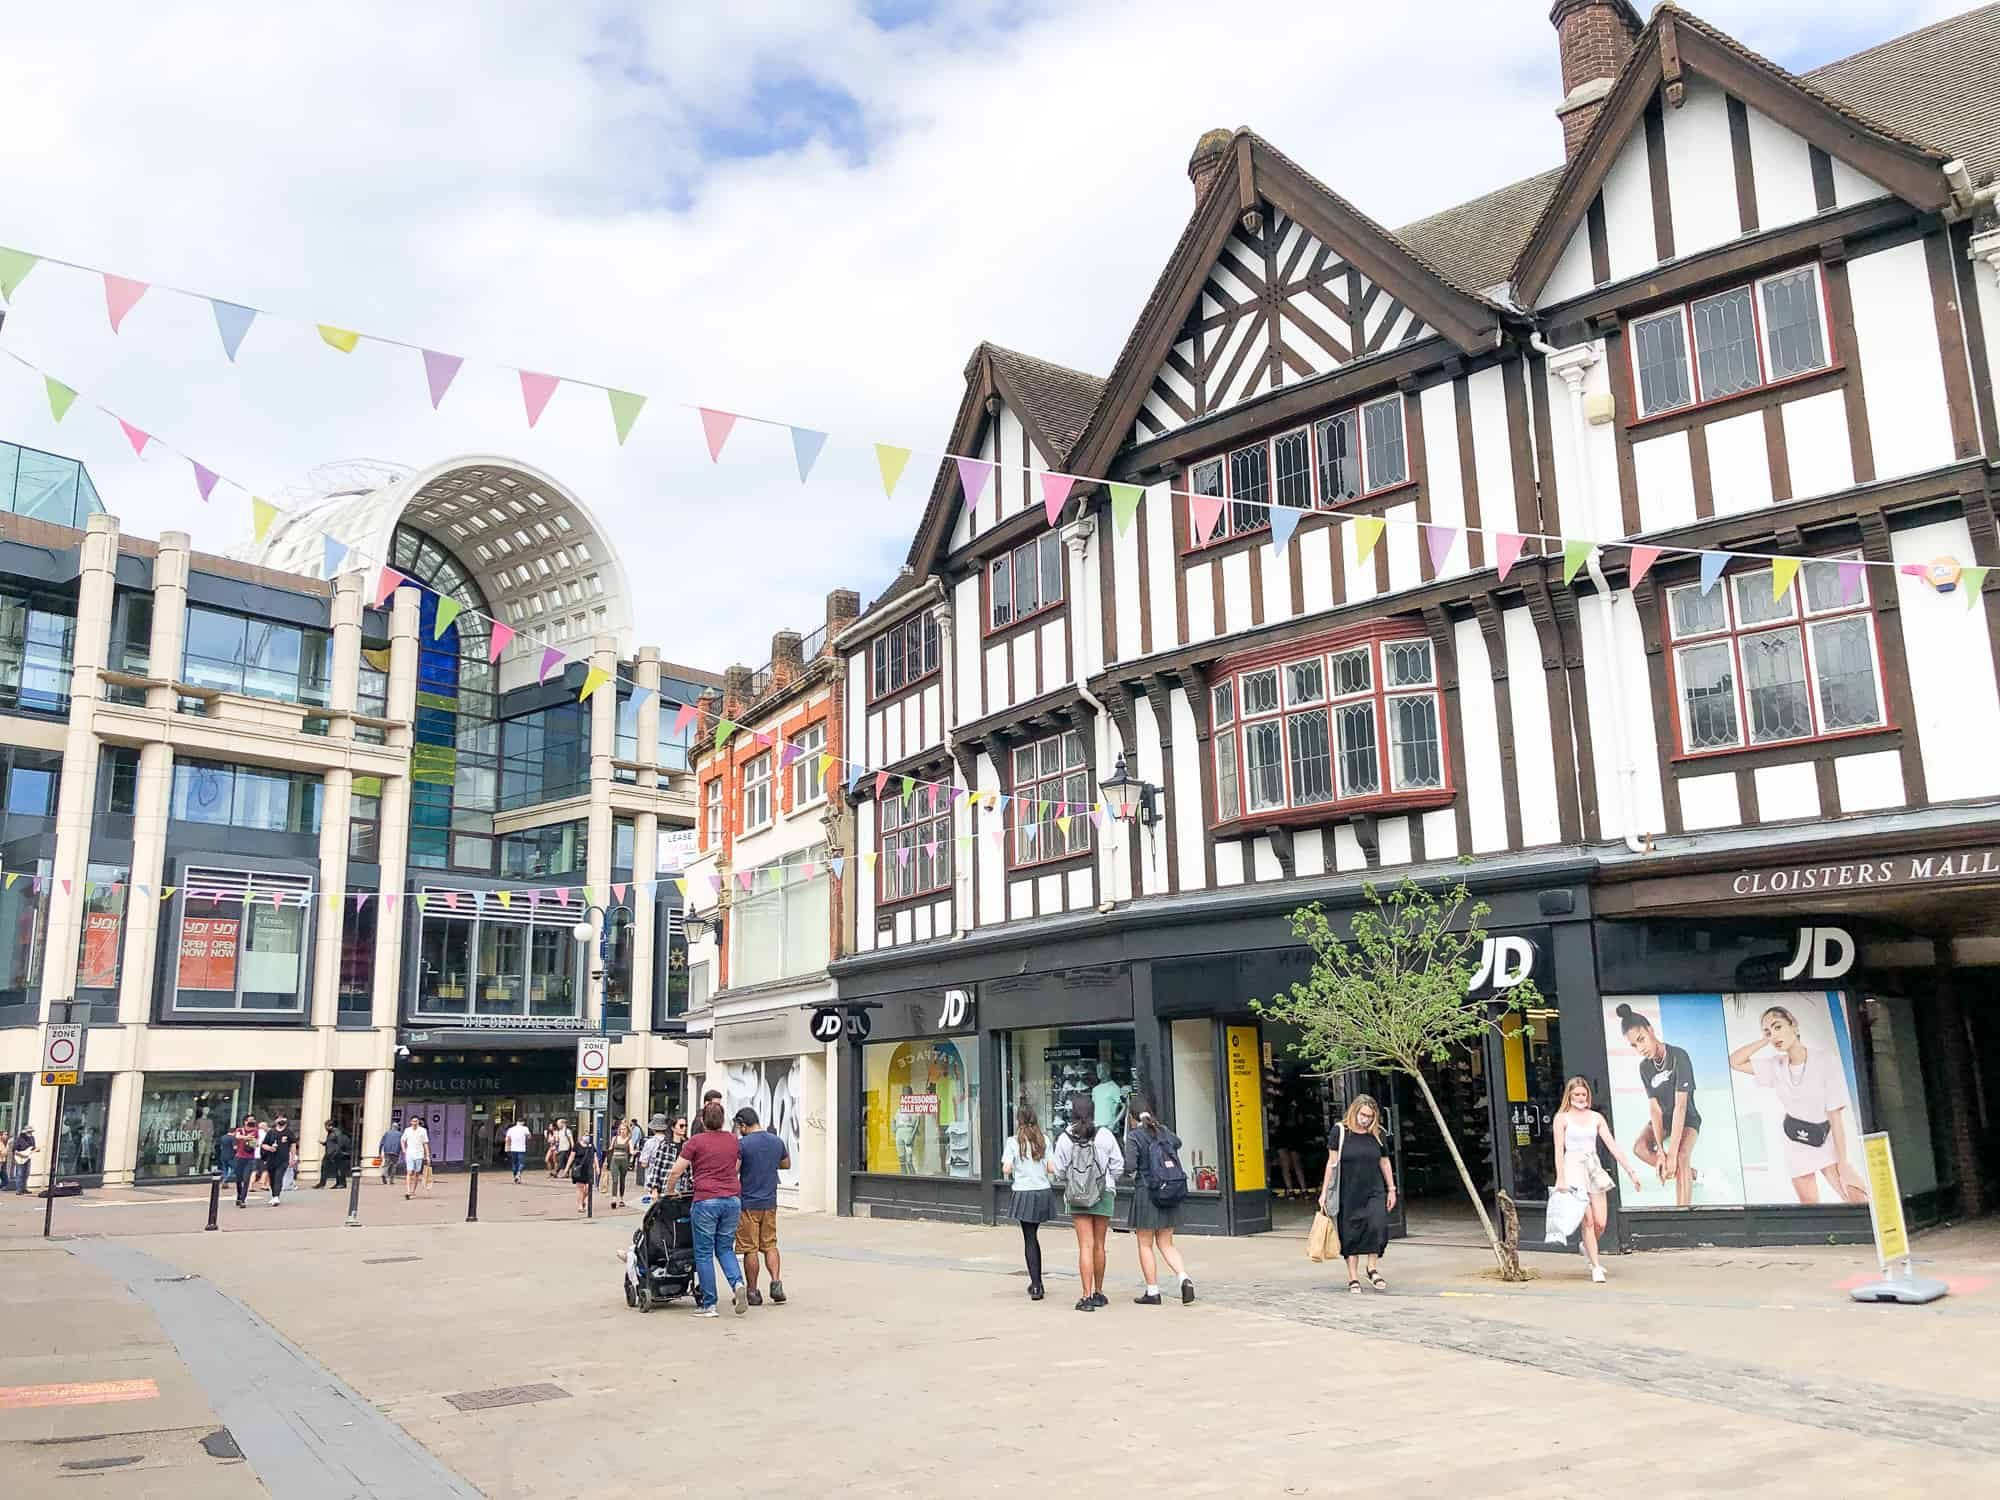 England - Kingston upon Thames - Street scenes with Bentall Centre and Tudor Facade buildings